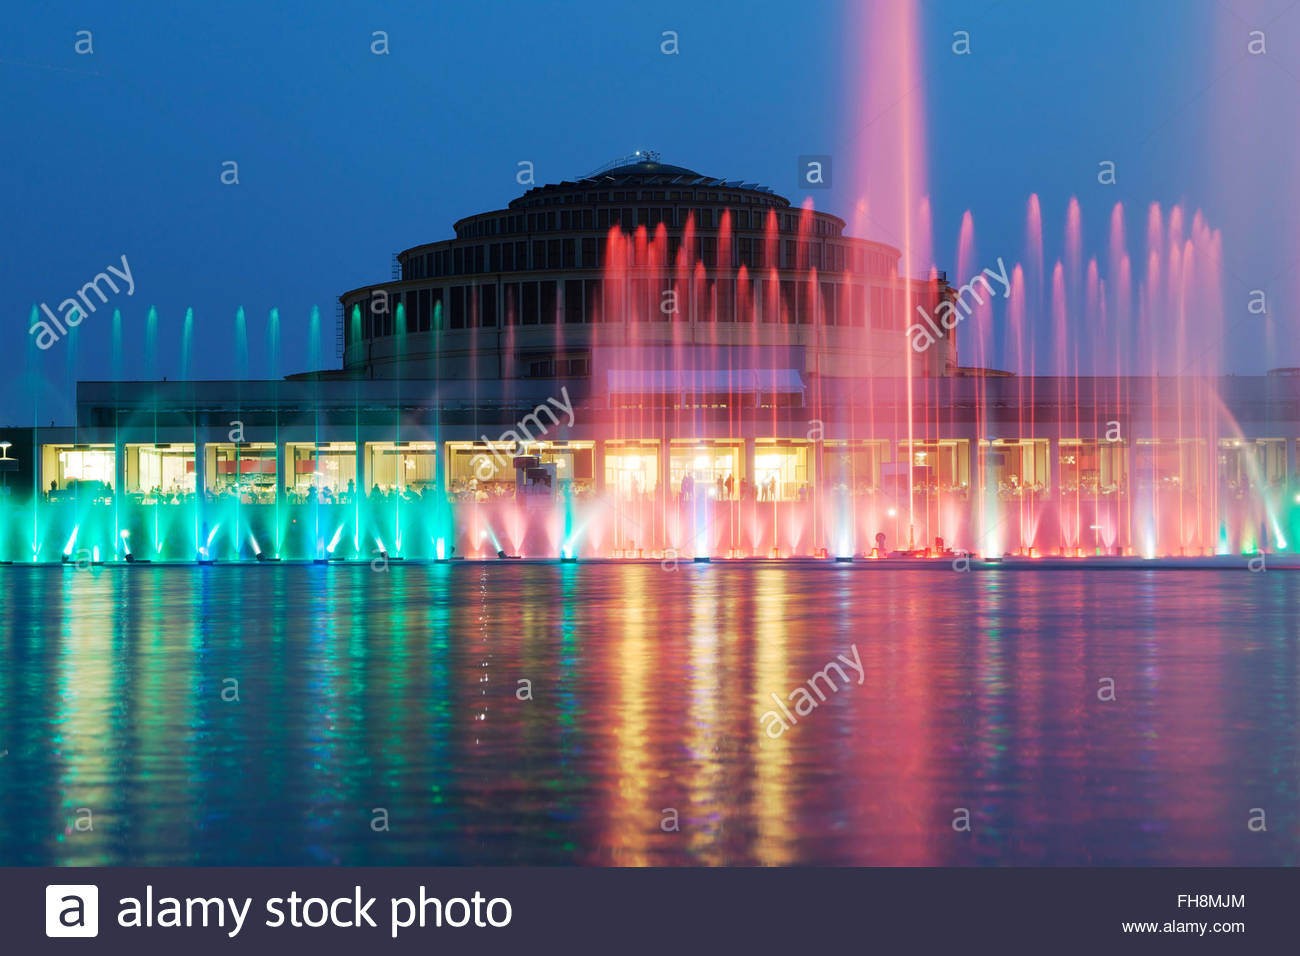 The Wroclaw Fountain with the Centennial Hall in the background 1300x956